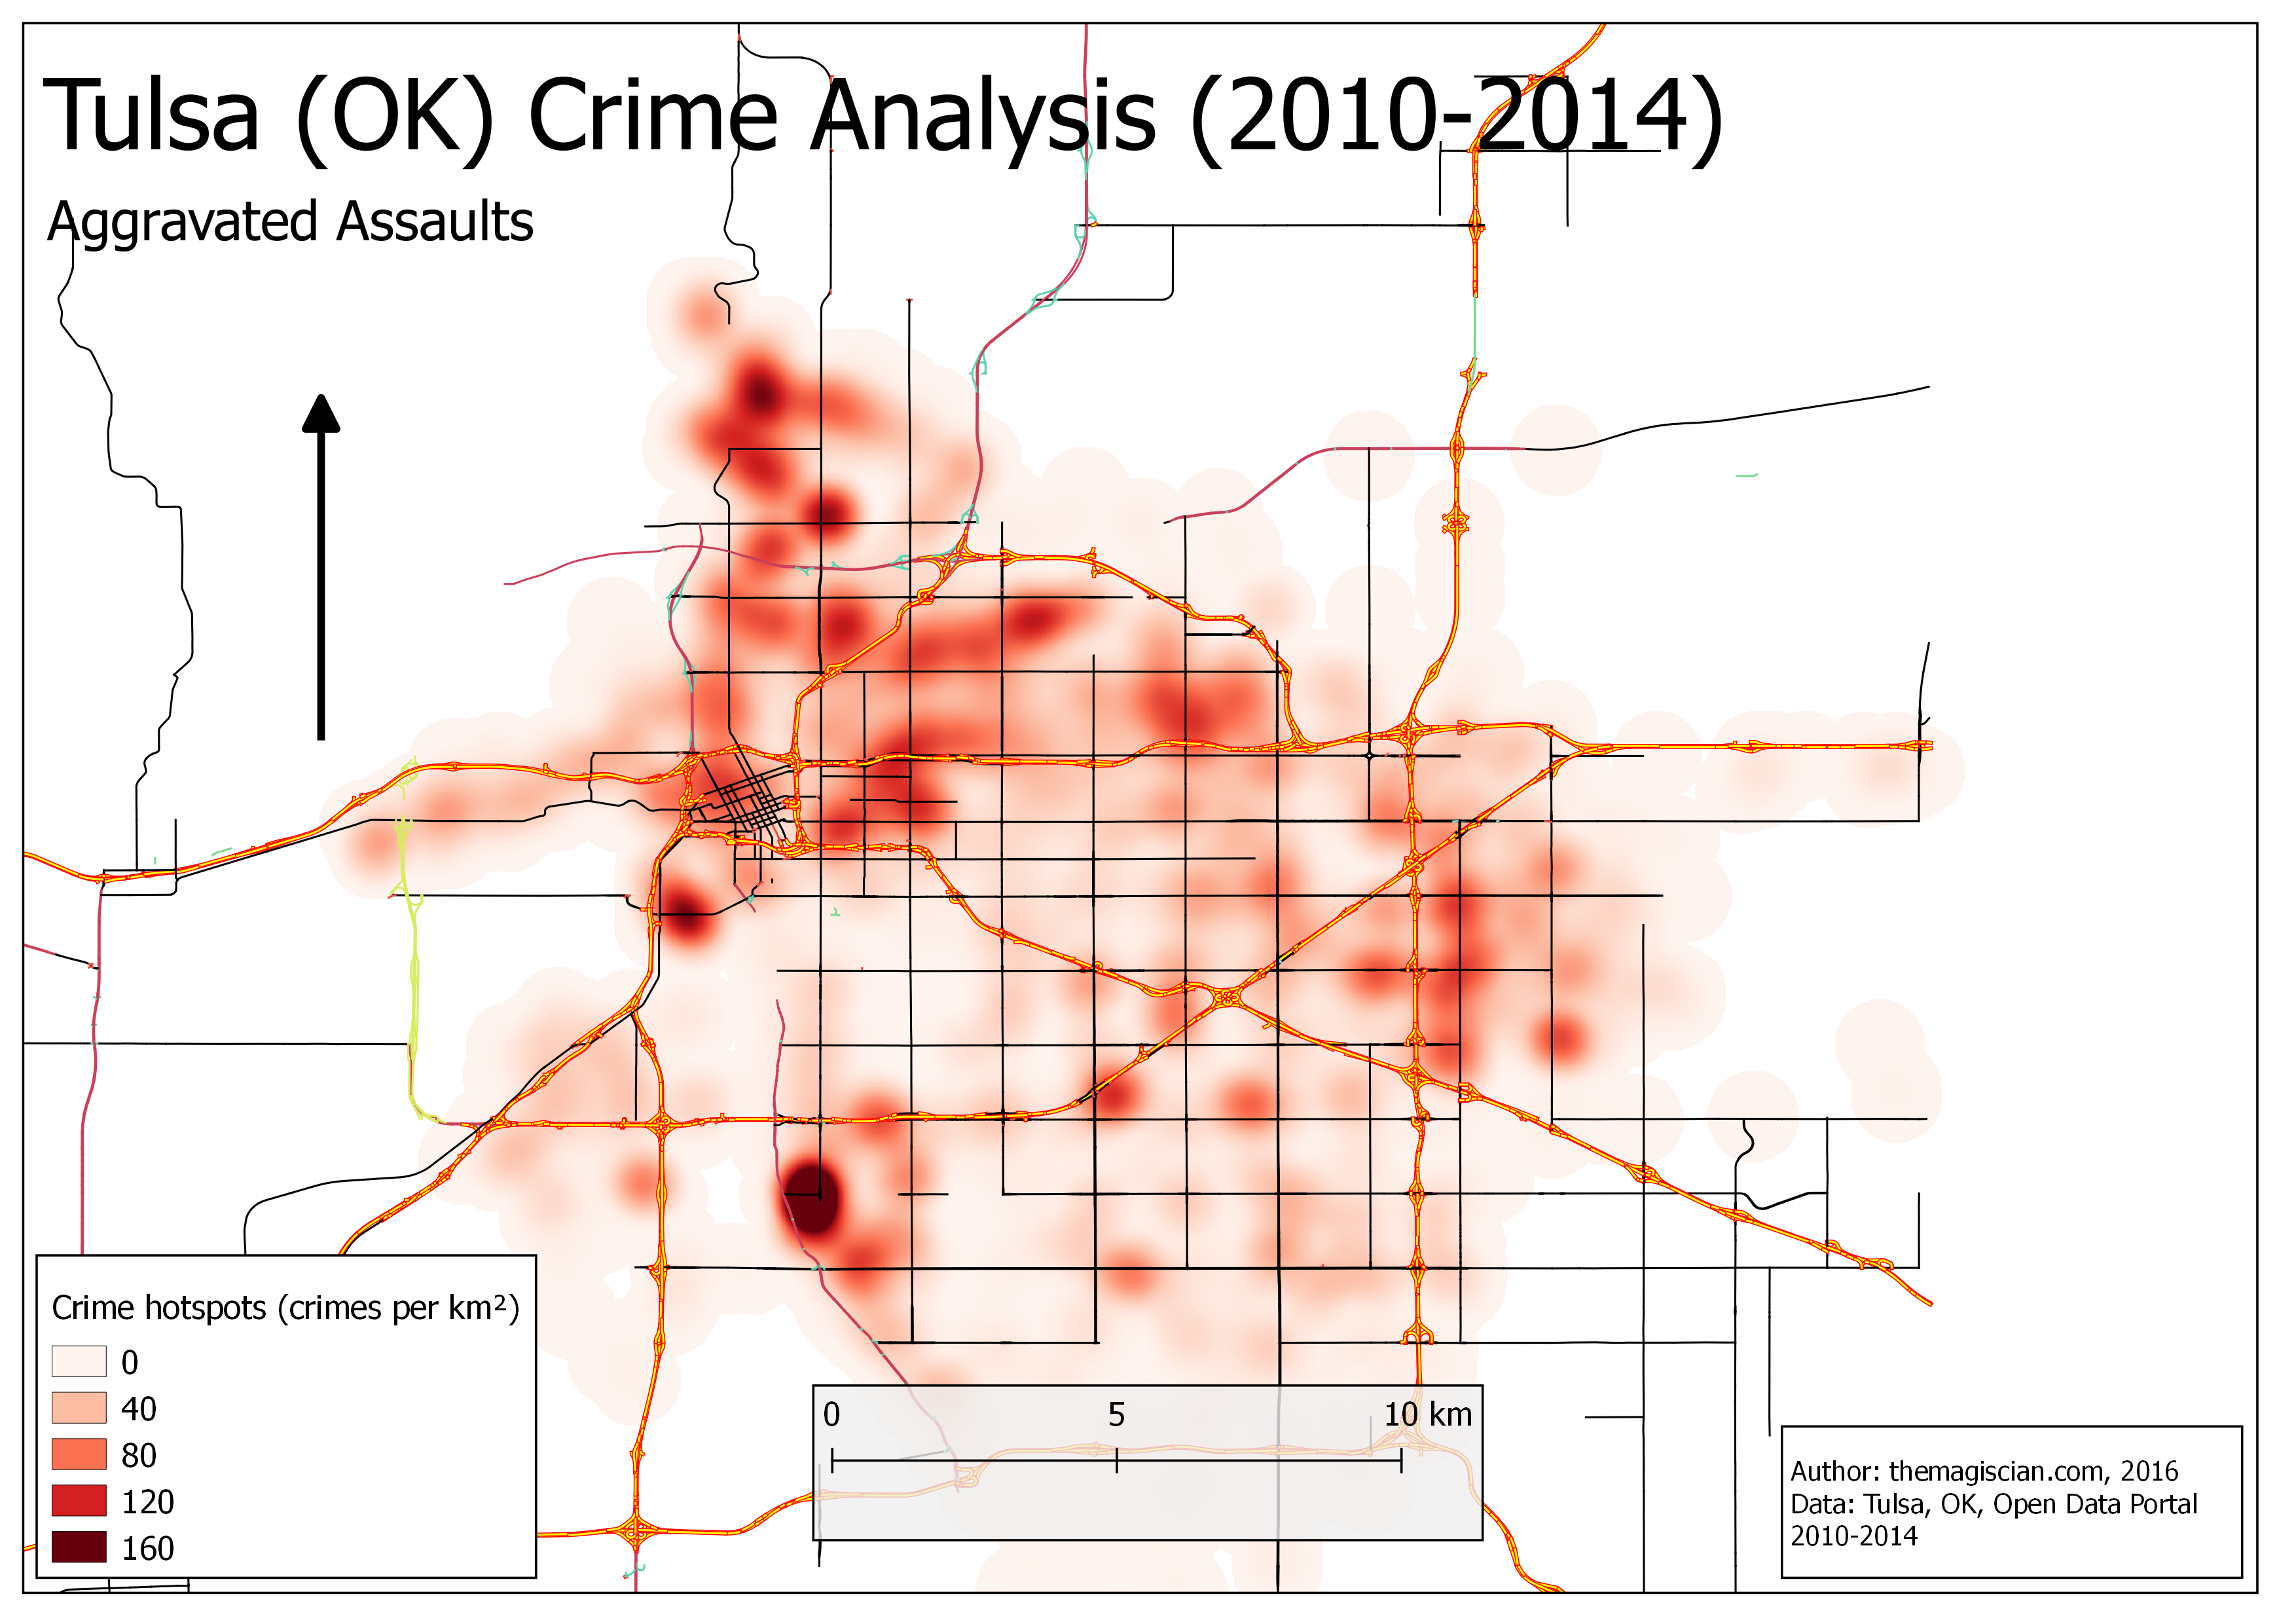 Aggravated Assaults hotspots (2010-2014)